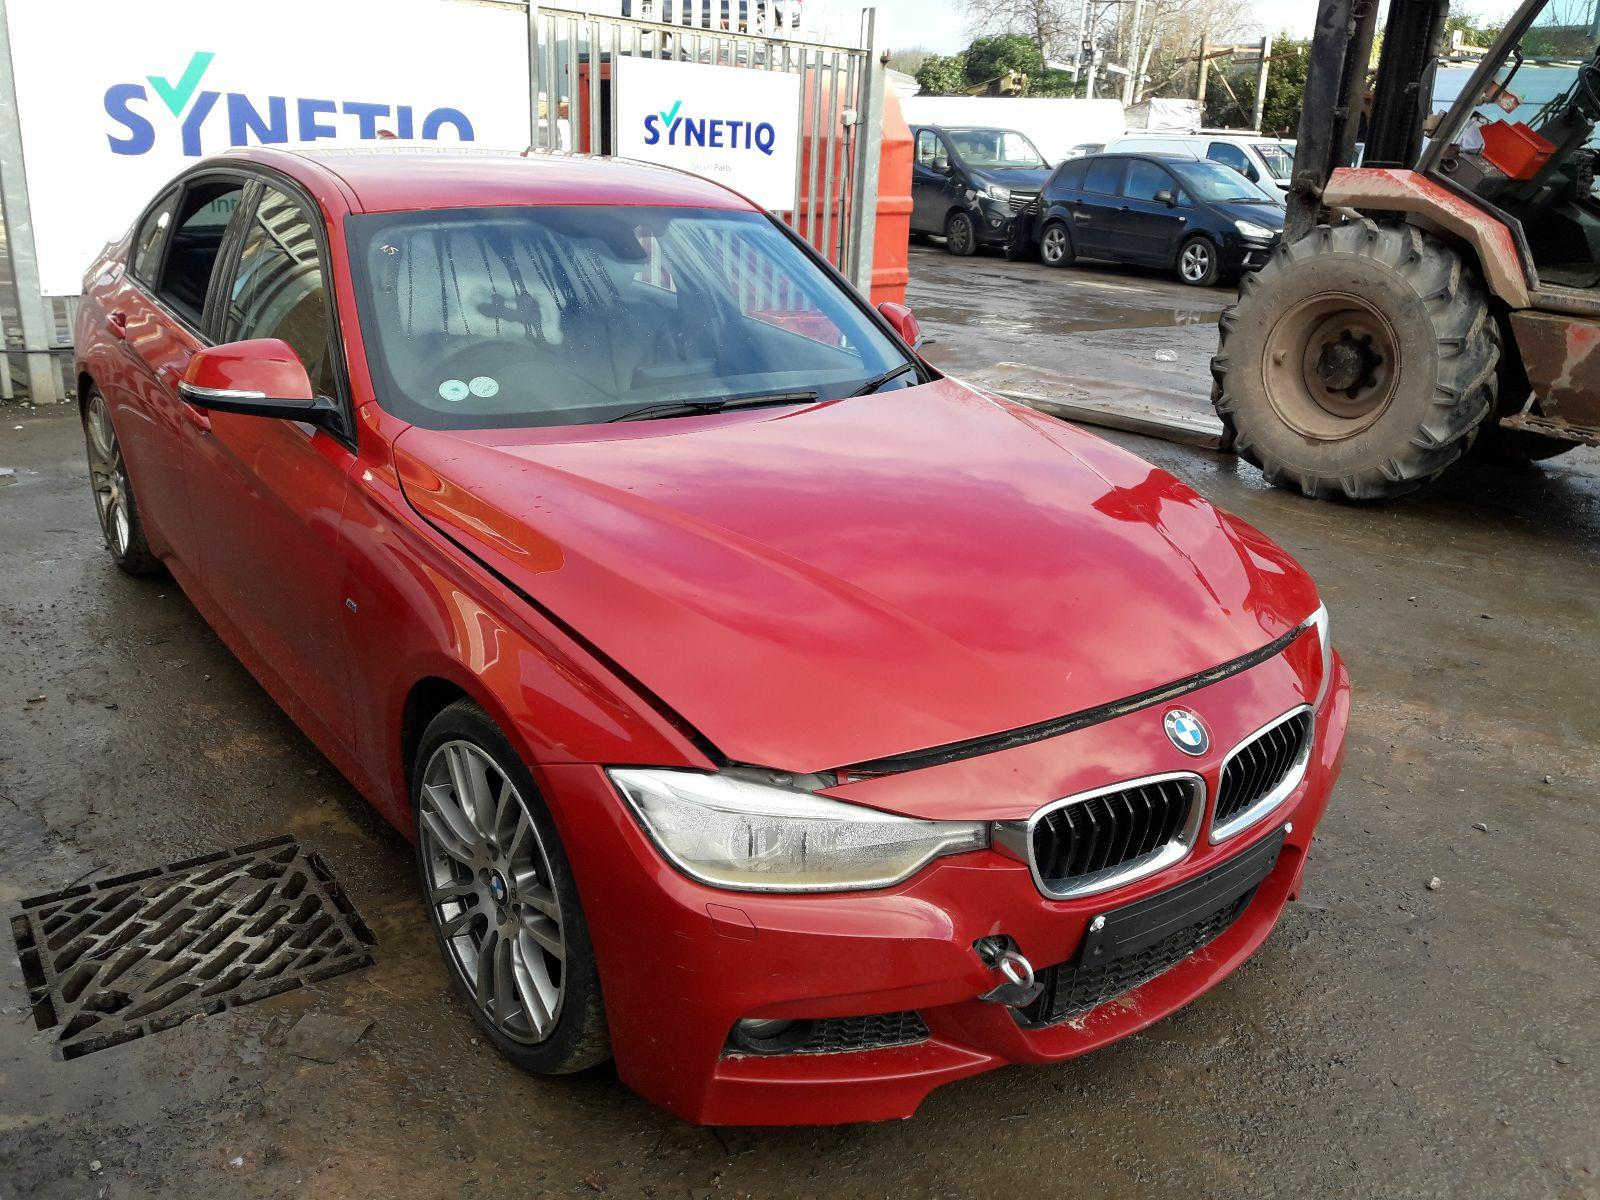 Synetiq 2015 Bmw 3 Series F30 2012 To 2018 320d M Sport 4 Door Saloon Diesel Automatic Breaking For Used And Spare Parts